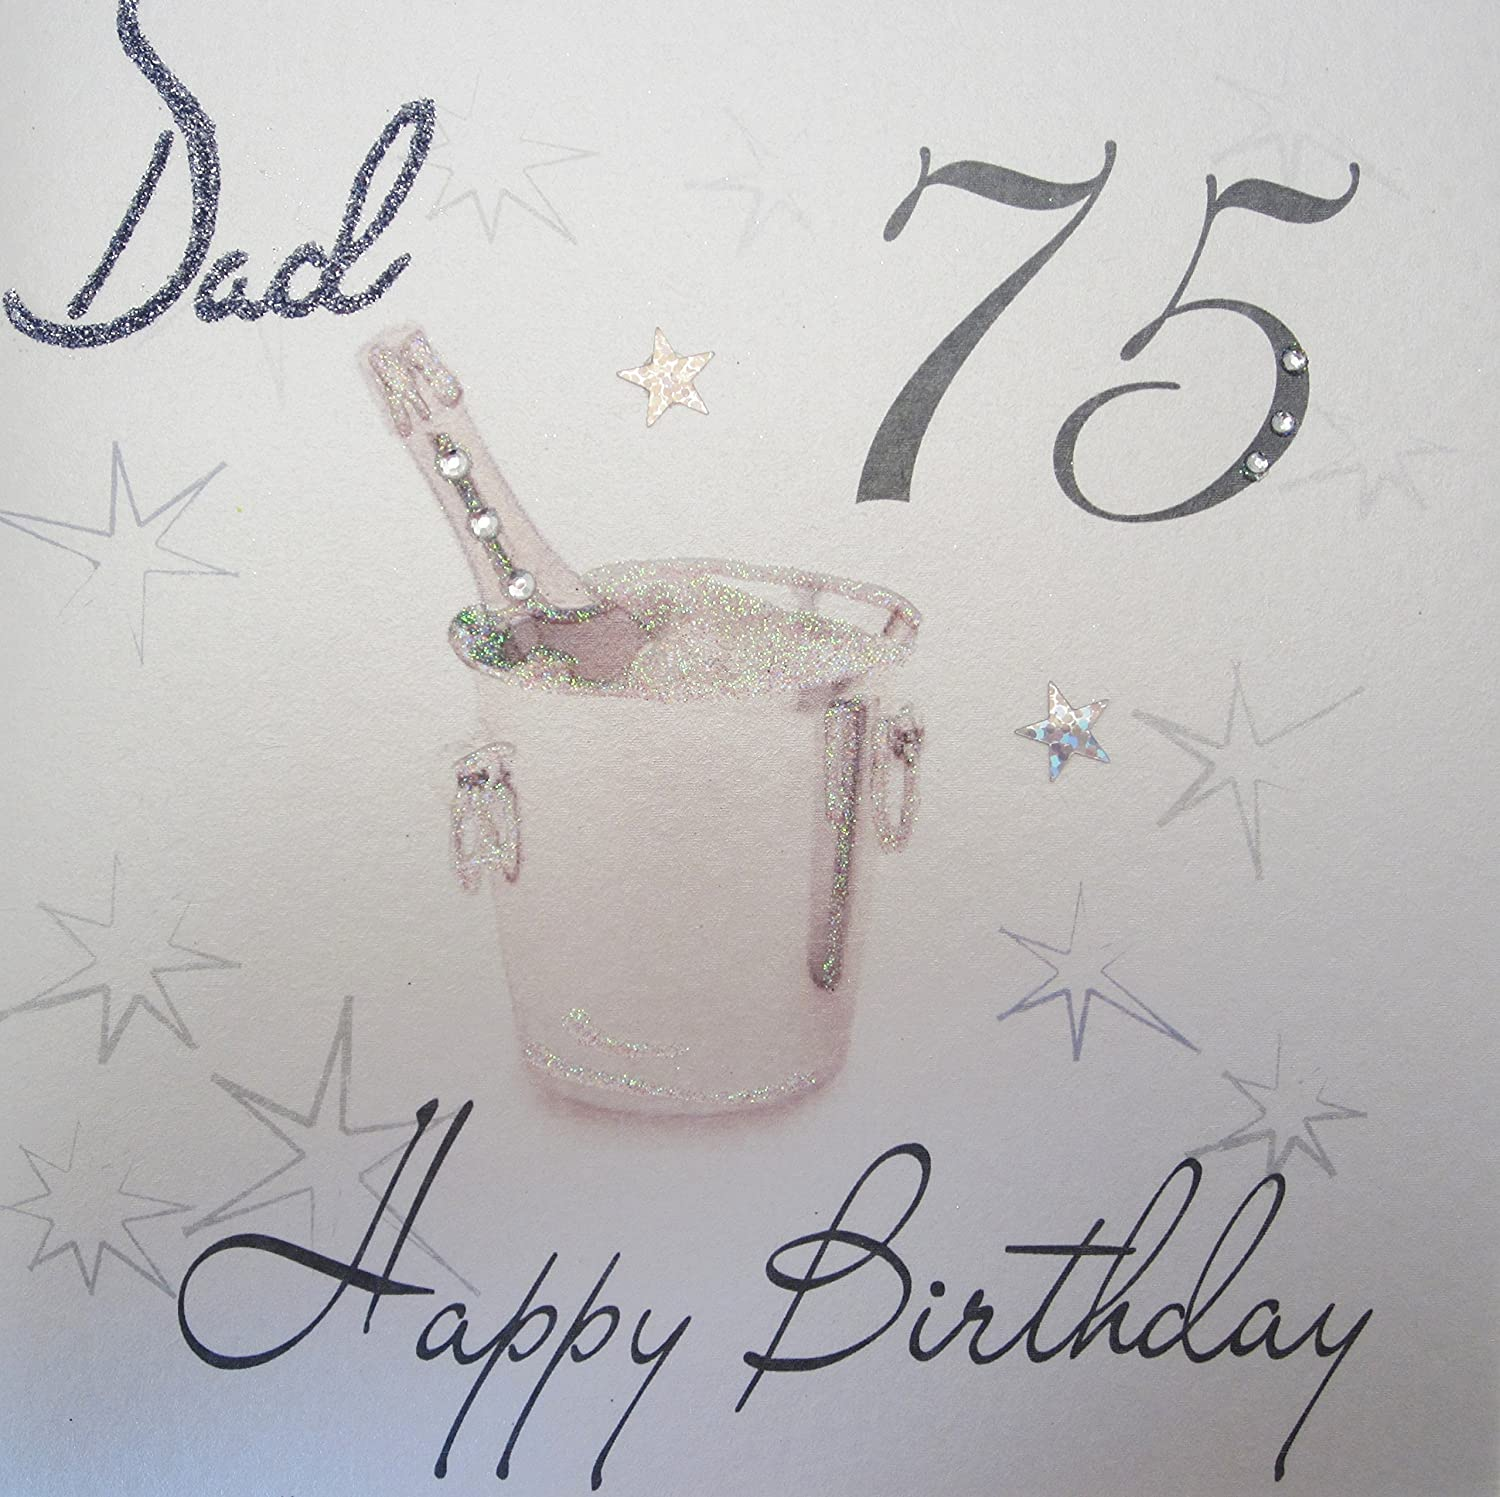 White cotton cards wbs75 d champagne bucket dad 75 happy birthday white cotton cards wbs75 d champagne bucket dad 75 happy birthday handmade 75th birthday card white amazon kitchen home bookmarktalkfo Choice Image